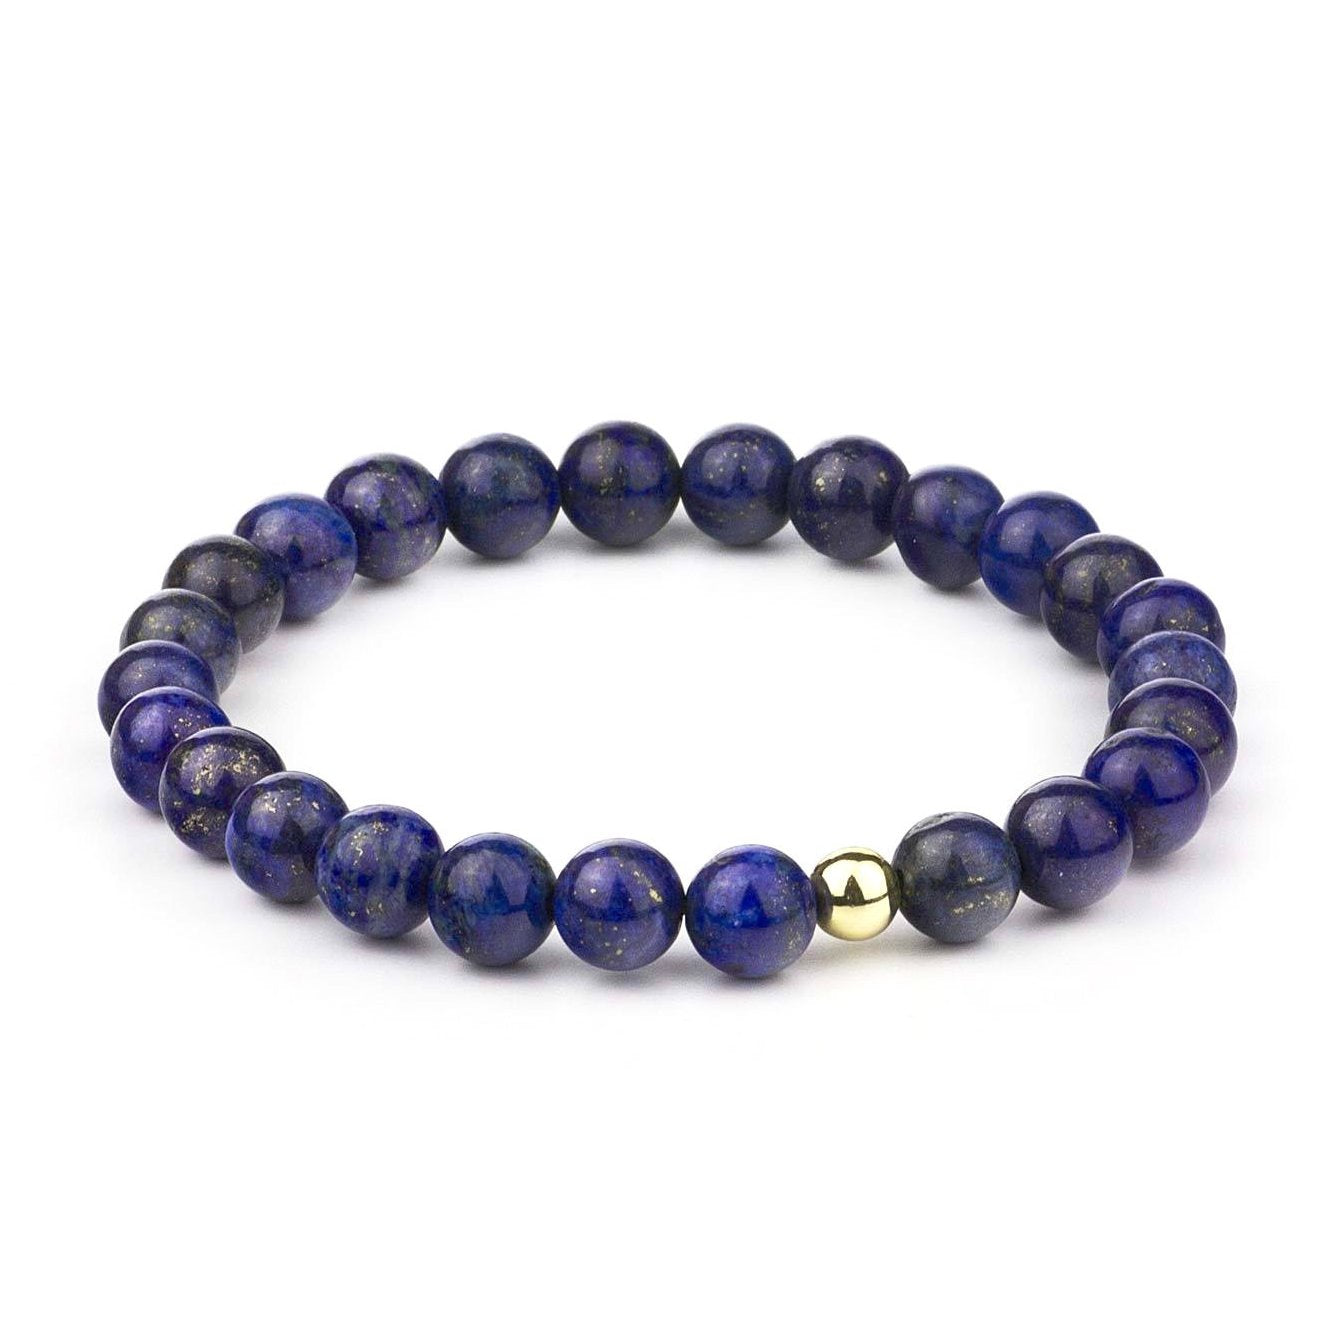 Precious Power Stone Beaded Bracelet